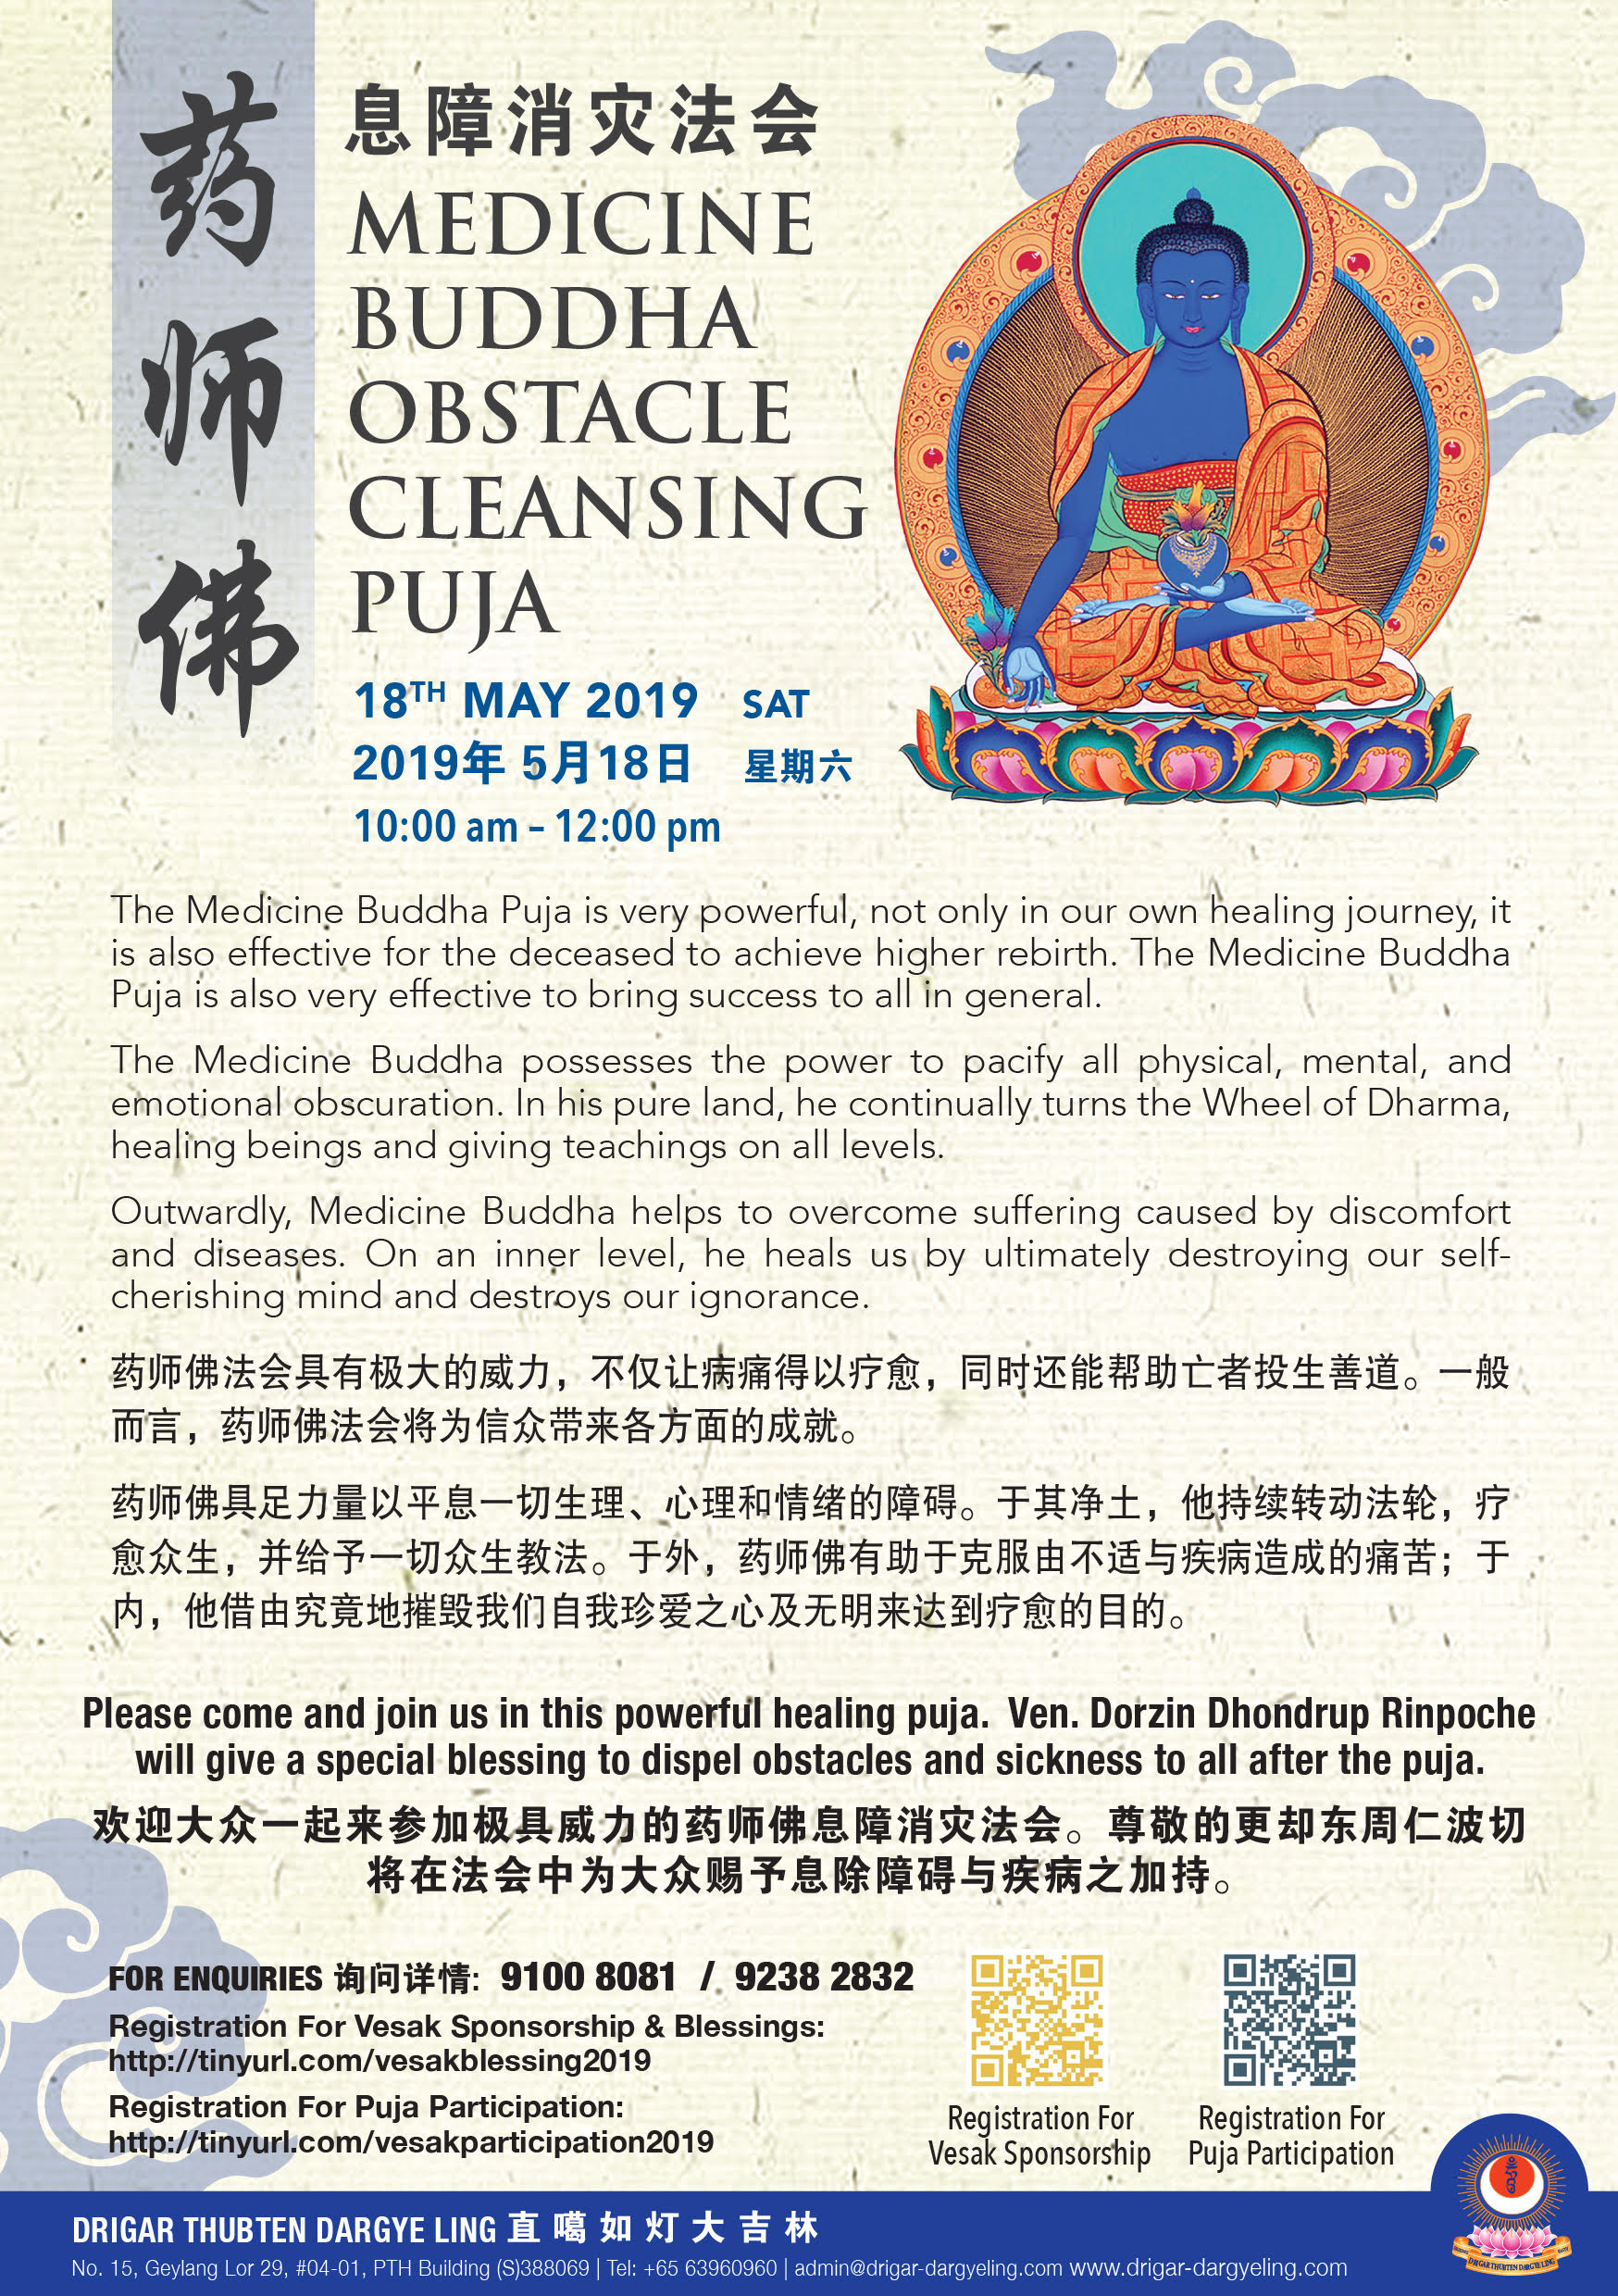 medicine-buddha-obstacle-cleansing-puja-2019